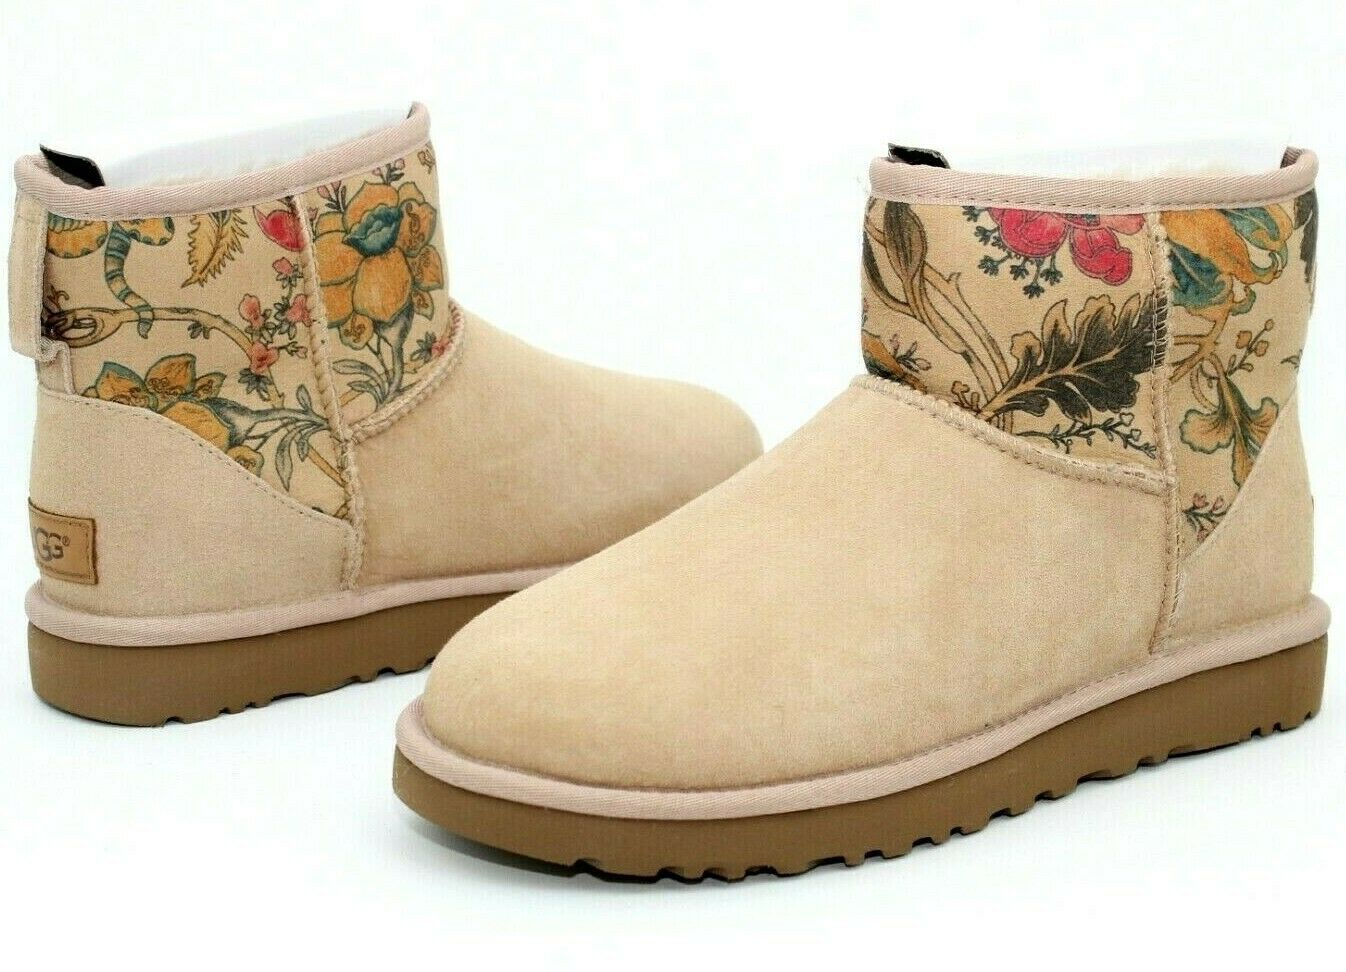 0676092c212 UGG Classic Mini II Floral Driftwood Suede Sheepskin Boots Size US 8-10  Rare!